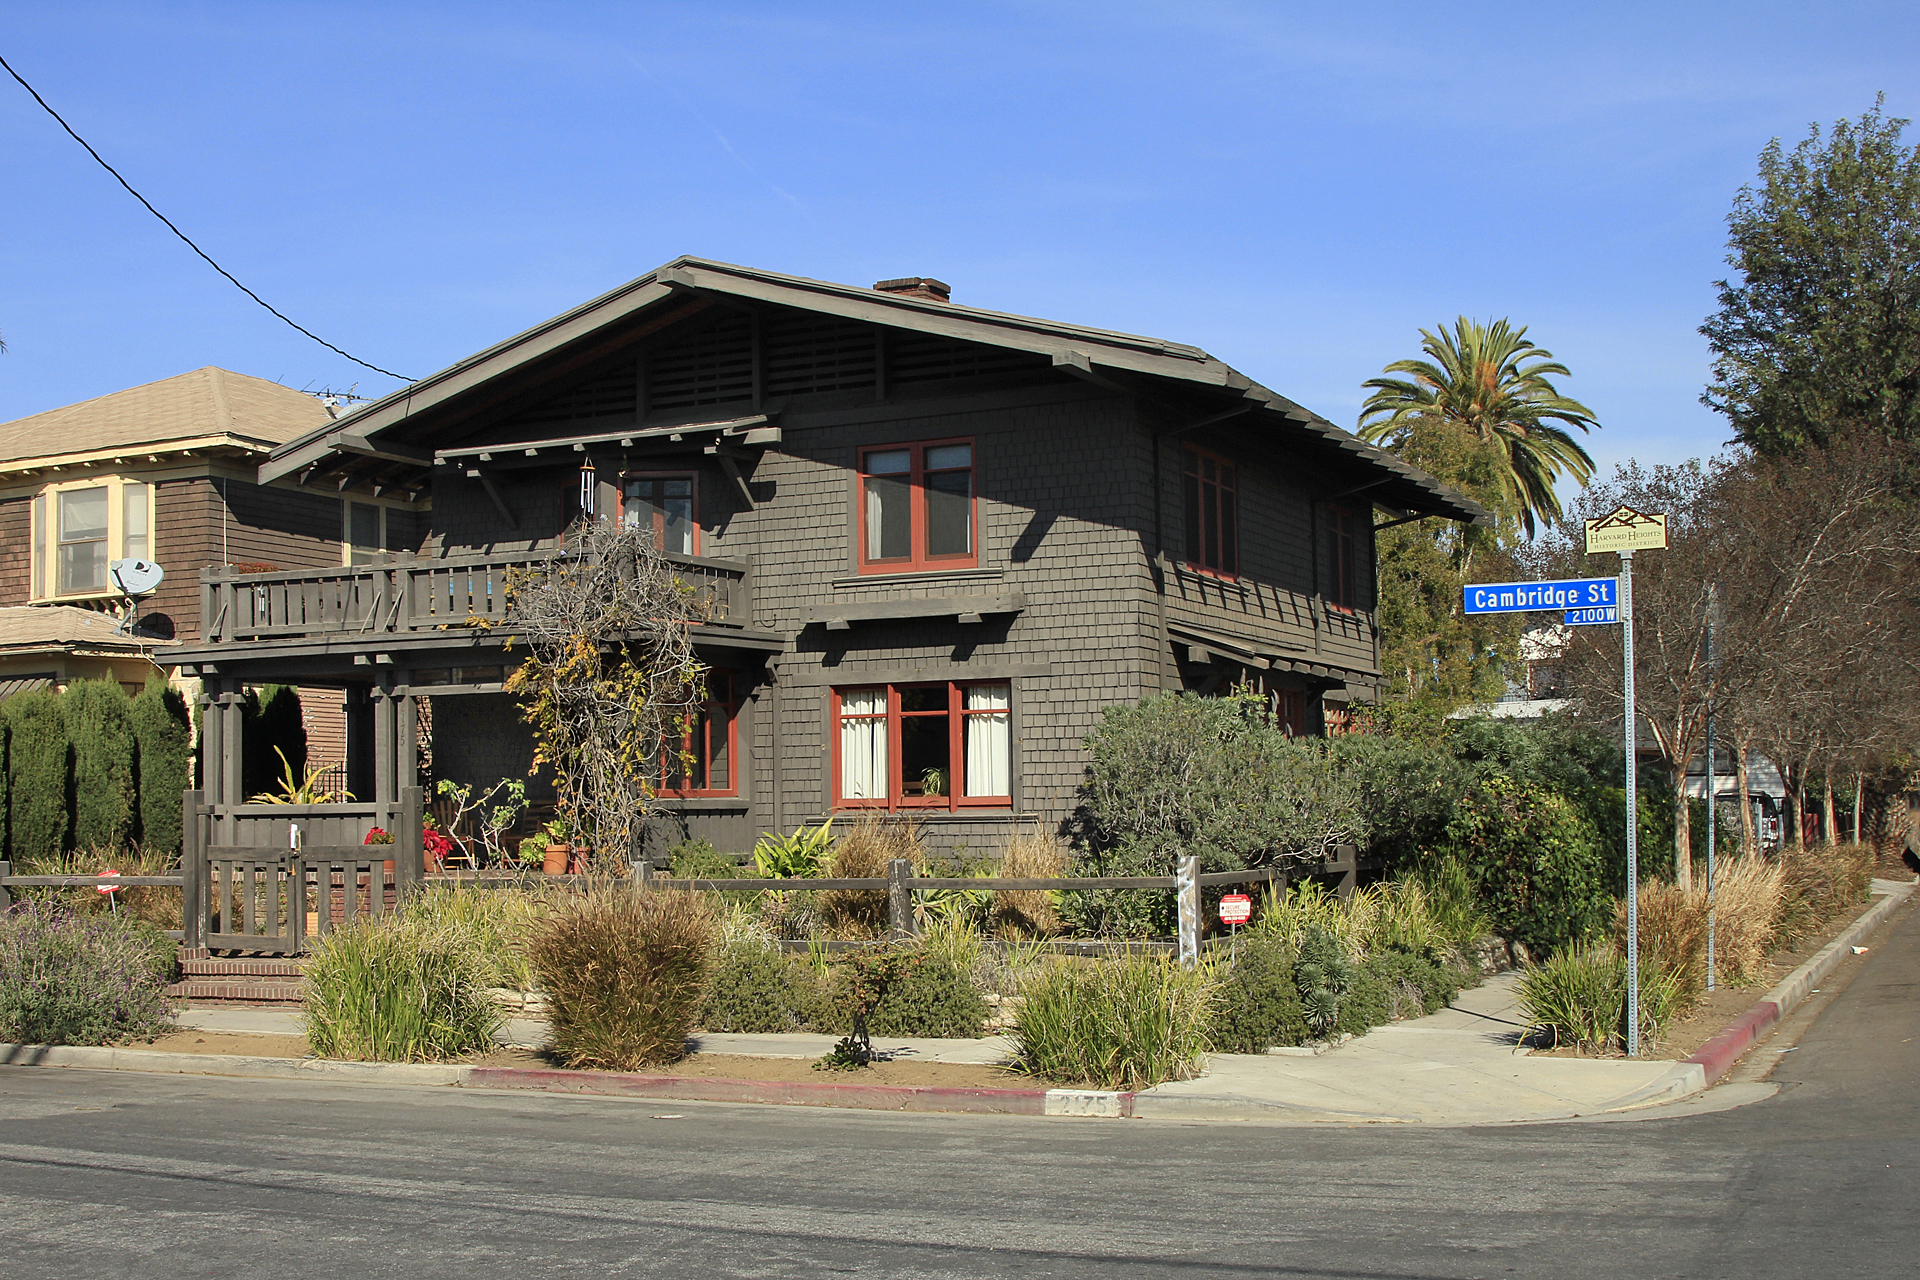 Speaking of architecture and history, how about this for starters? This is the Lucy Wheeler house, built in 1905, the last remaining Greene and Greene house within the city of Los Angeles. Designated as Historic Cultural Monument #991, it was owned and carefully restored by preservation architect and L.A. Conservancy founder Martin Eli Weil during the 25 years that he lived there. It most recently sold in 2011 and it continues to be protected by easements held by the Conservancy.